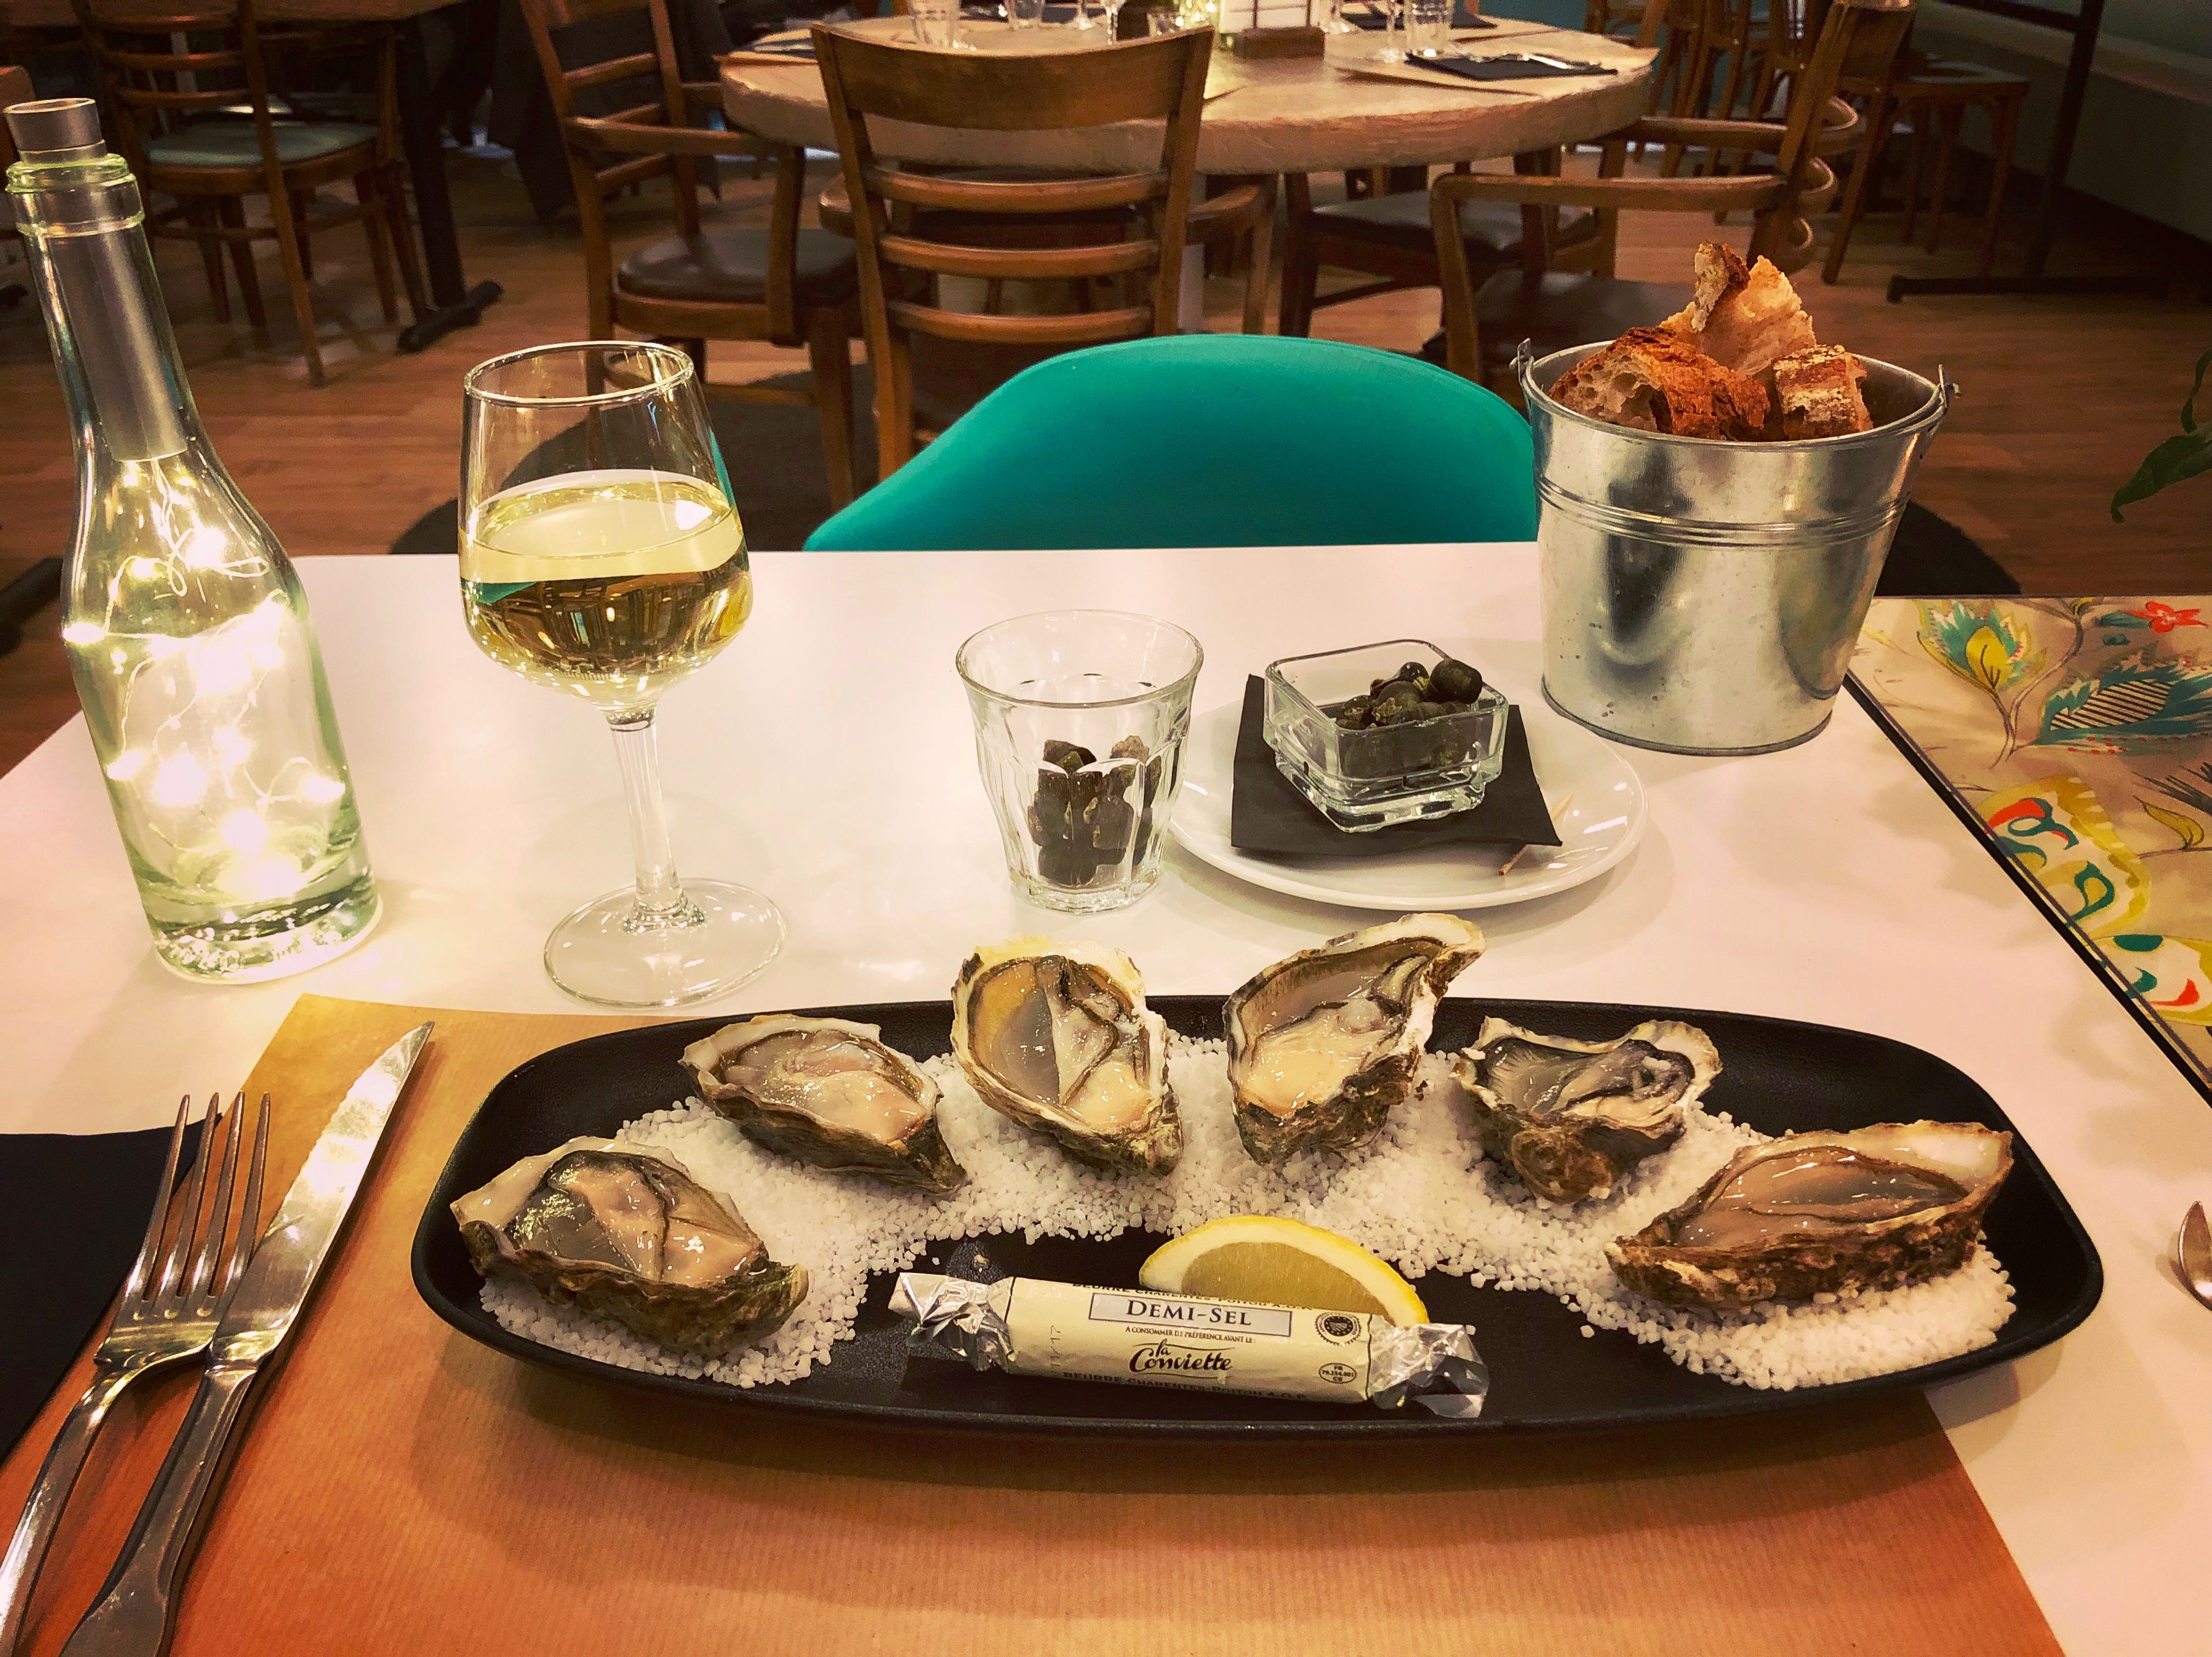 Restaurant for tasting oysters in Marennes